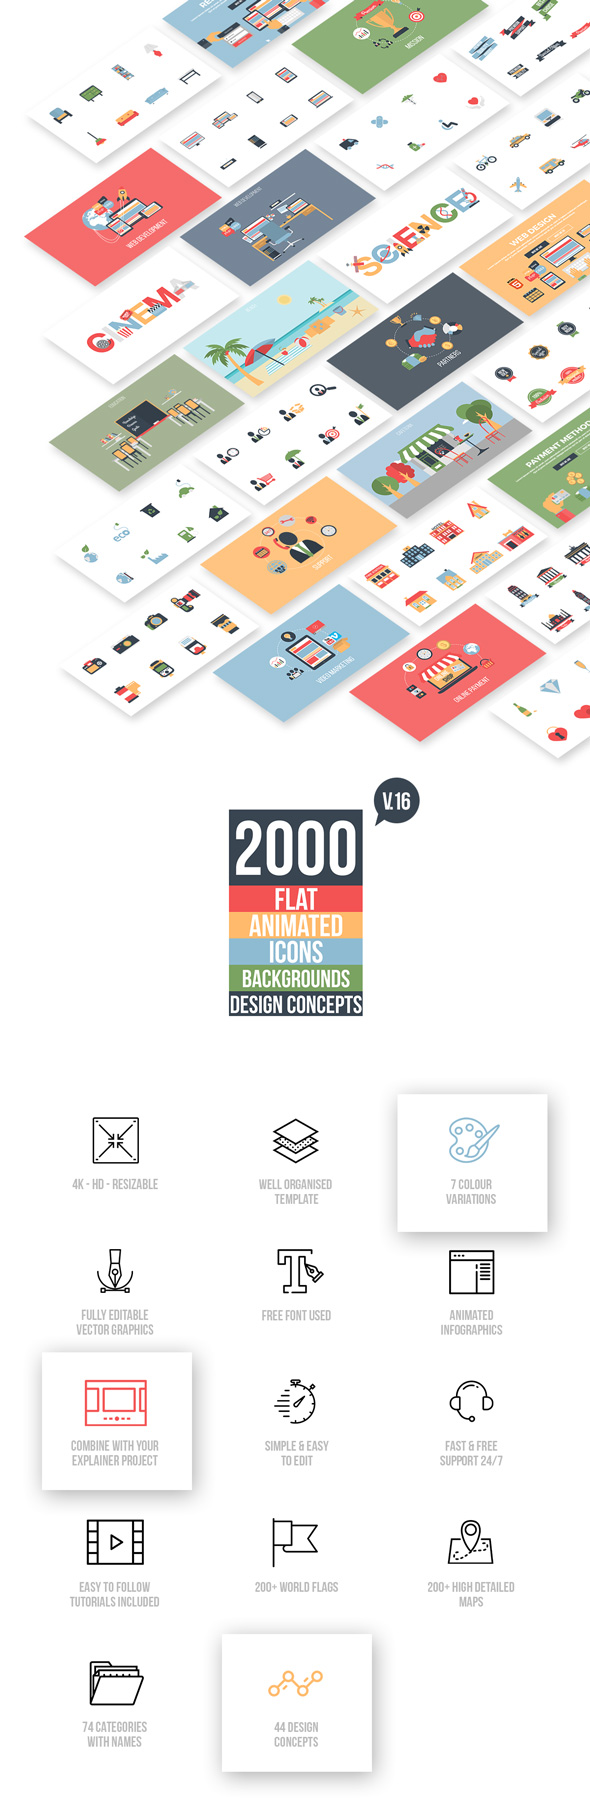 Flat Animated Icons Library - 10